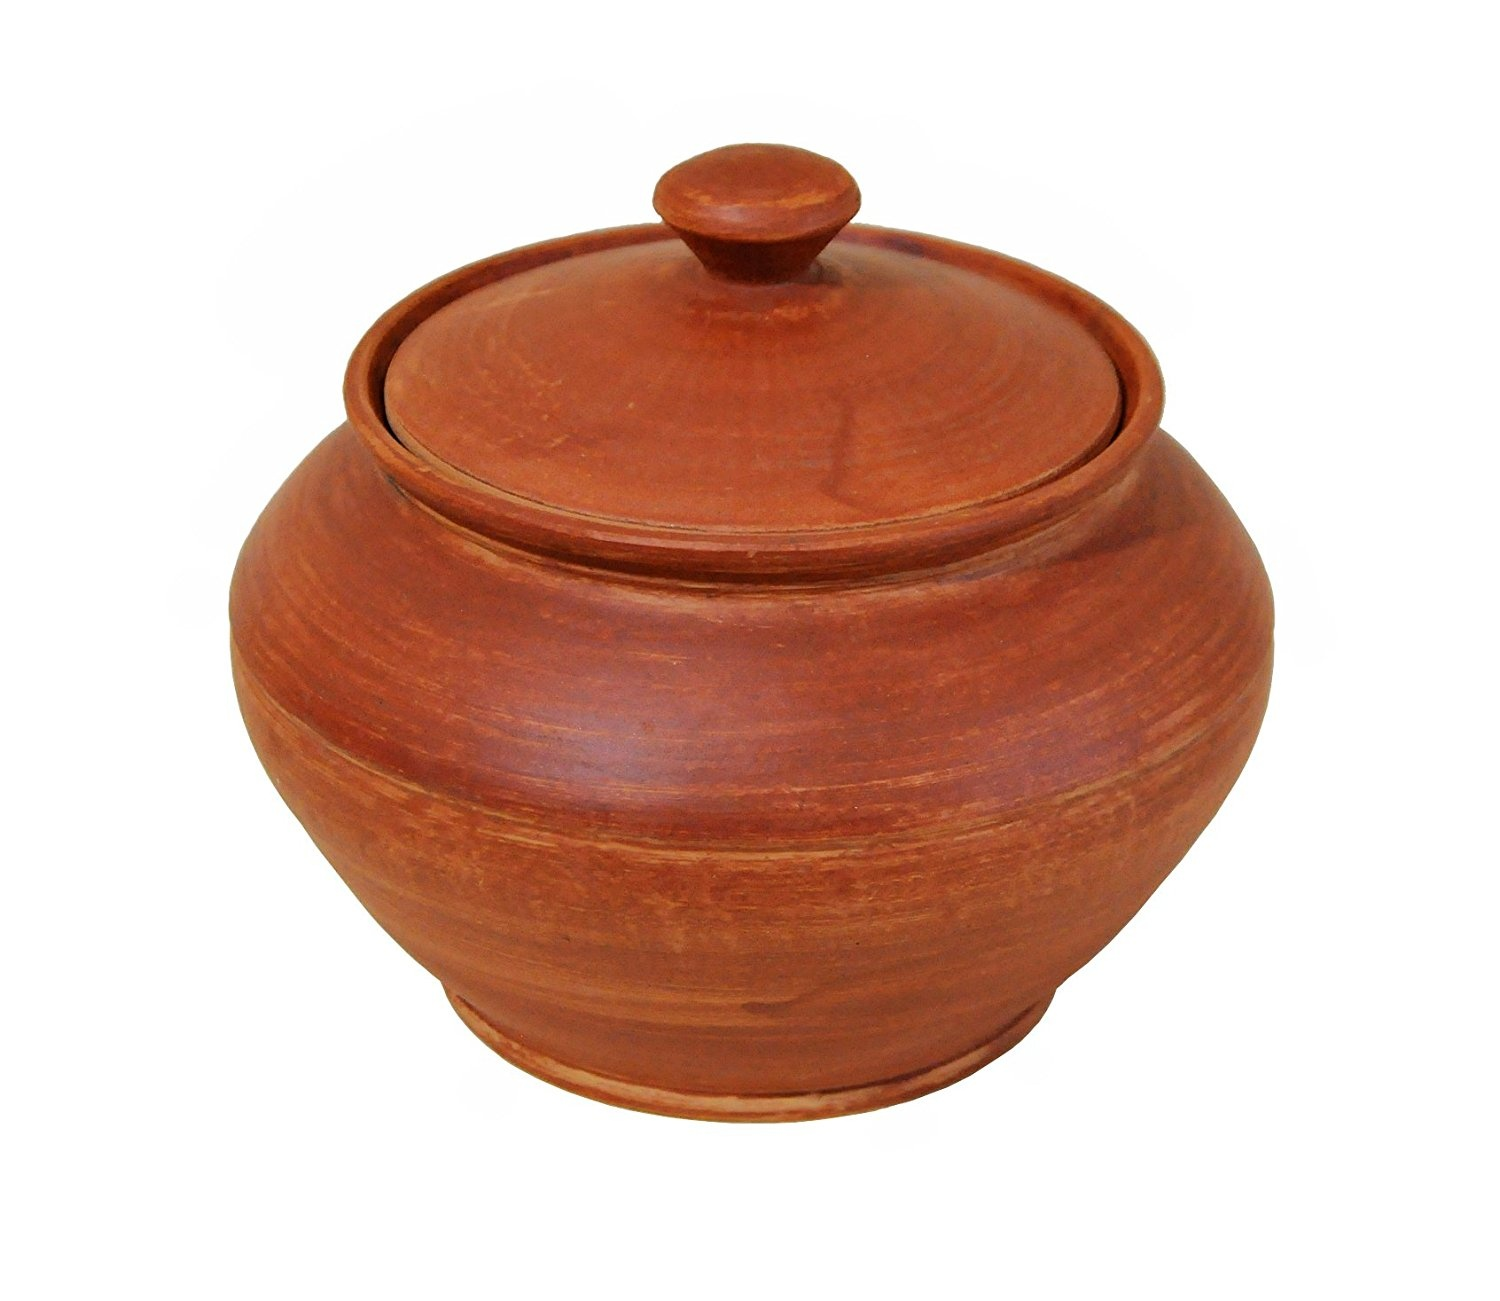 clay cooking pots new zealand Handmade 2ml 2.2L Ceramic Cooking Pot Red Clay Kitchen Artisan